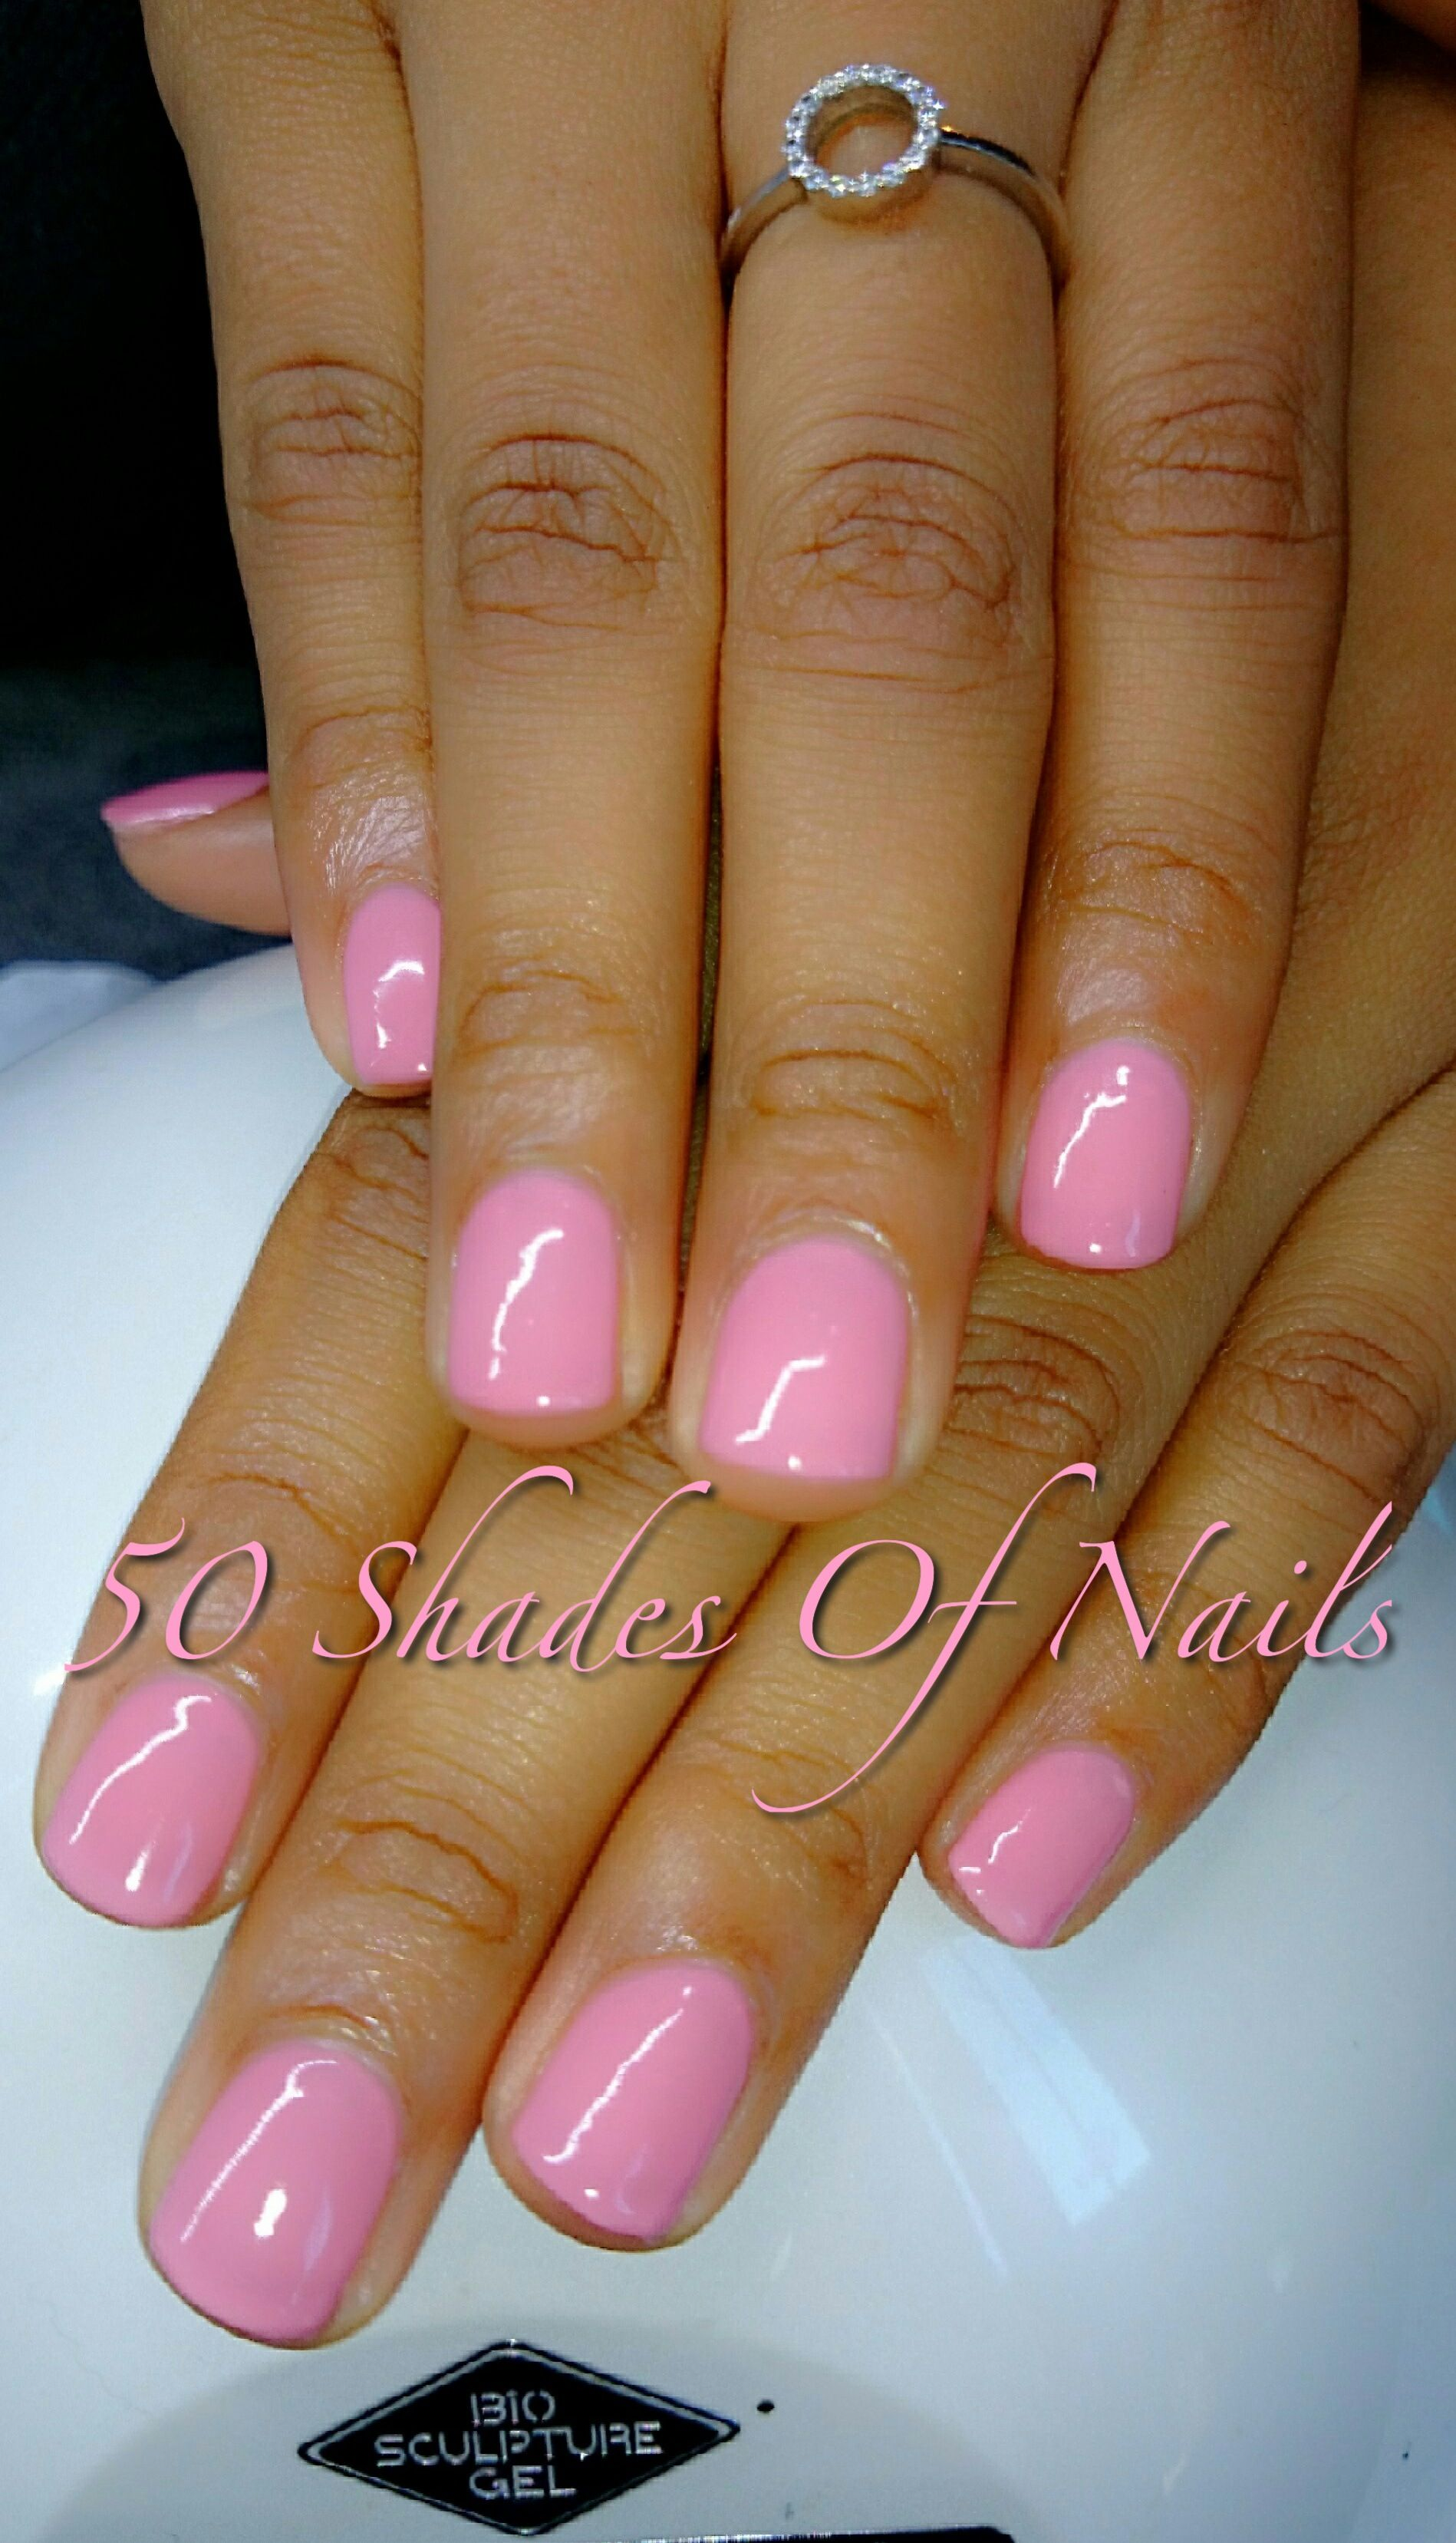 Bio Sculpture Gel overlays | nails | Gel nails, Overlay ...